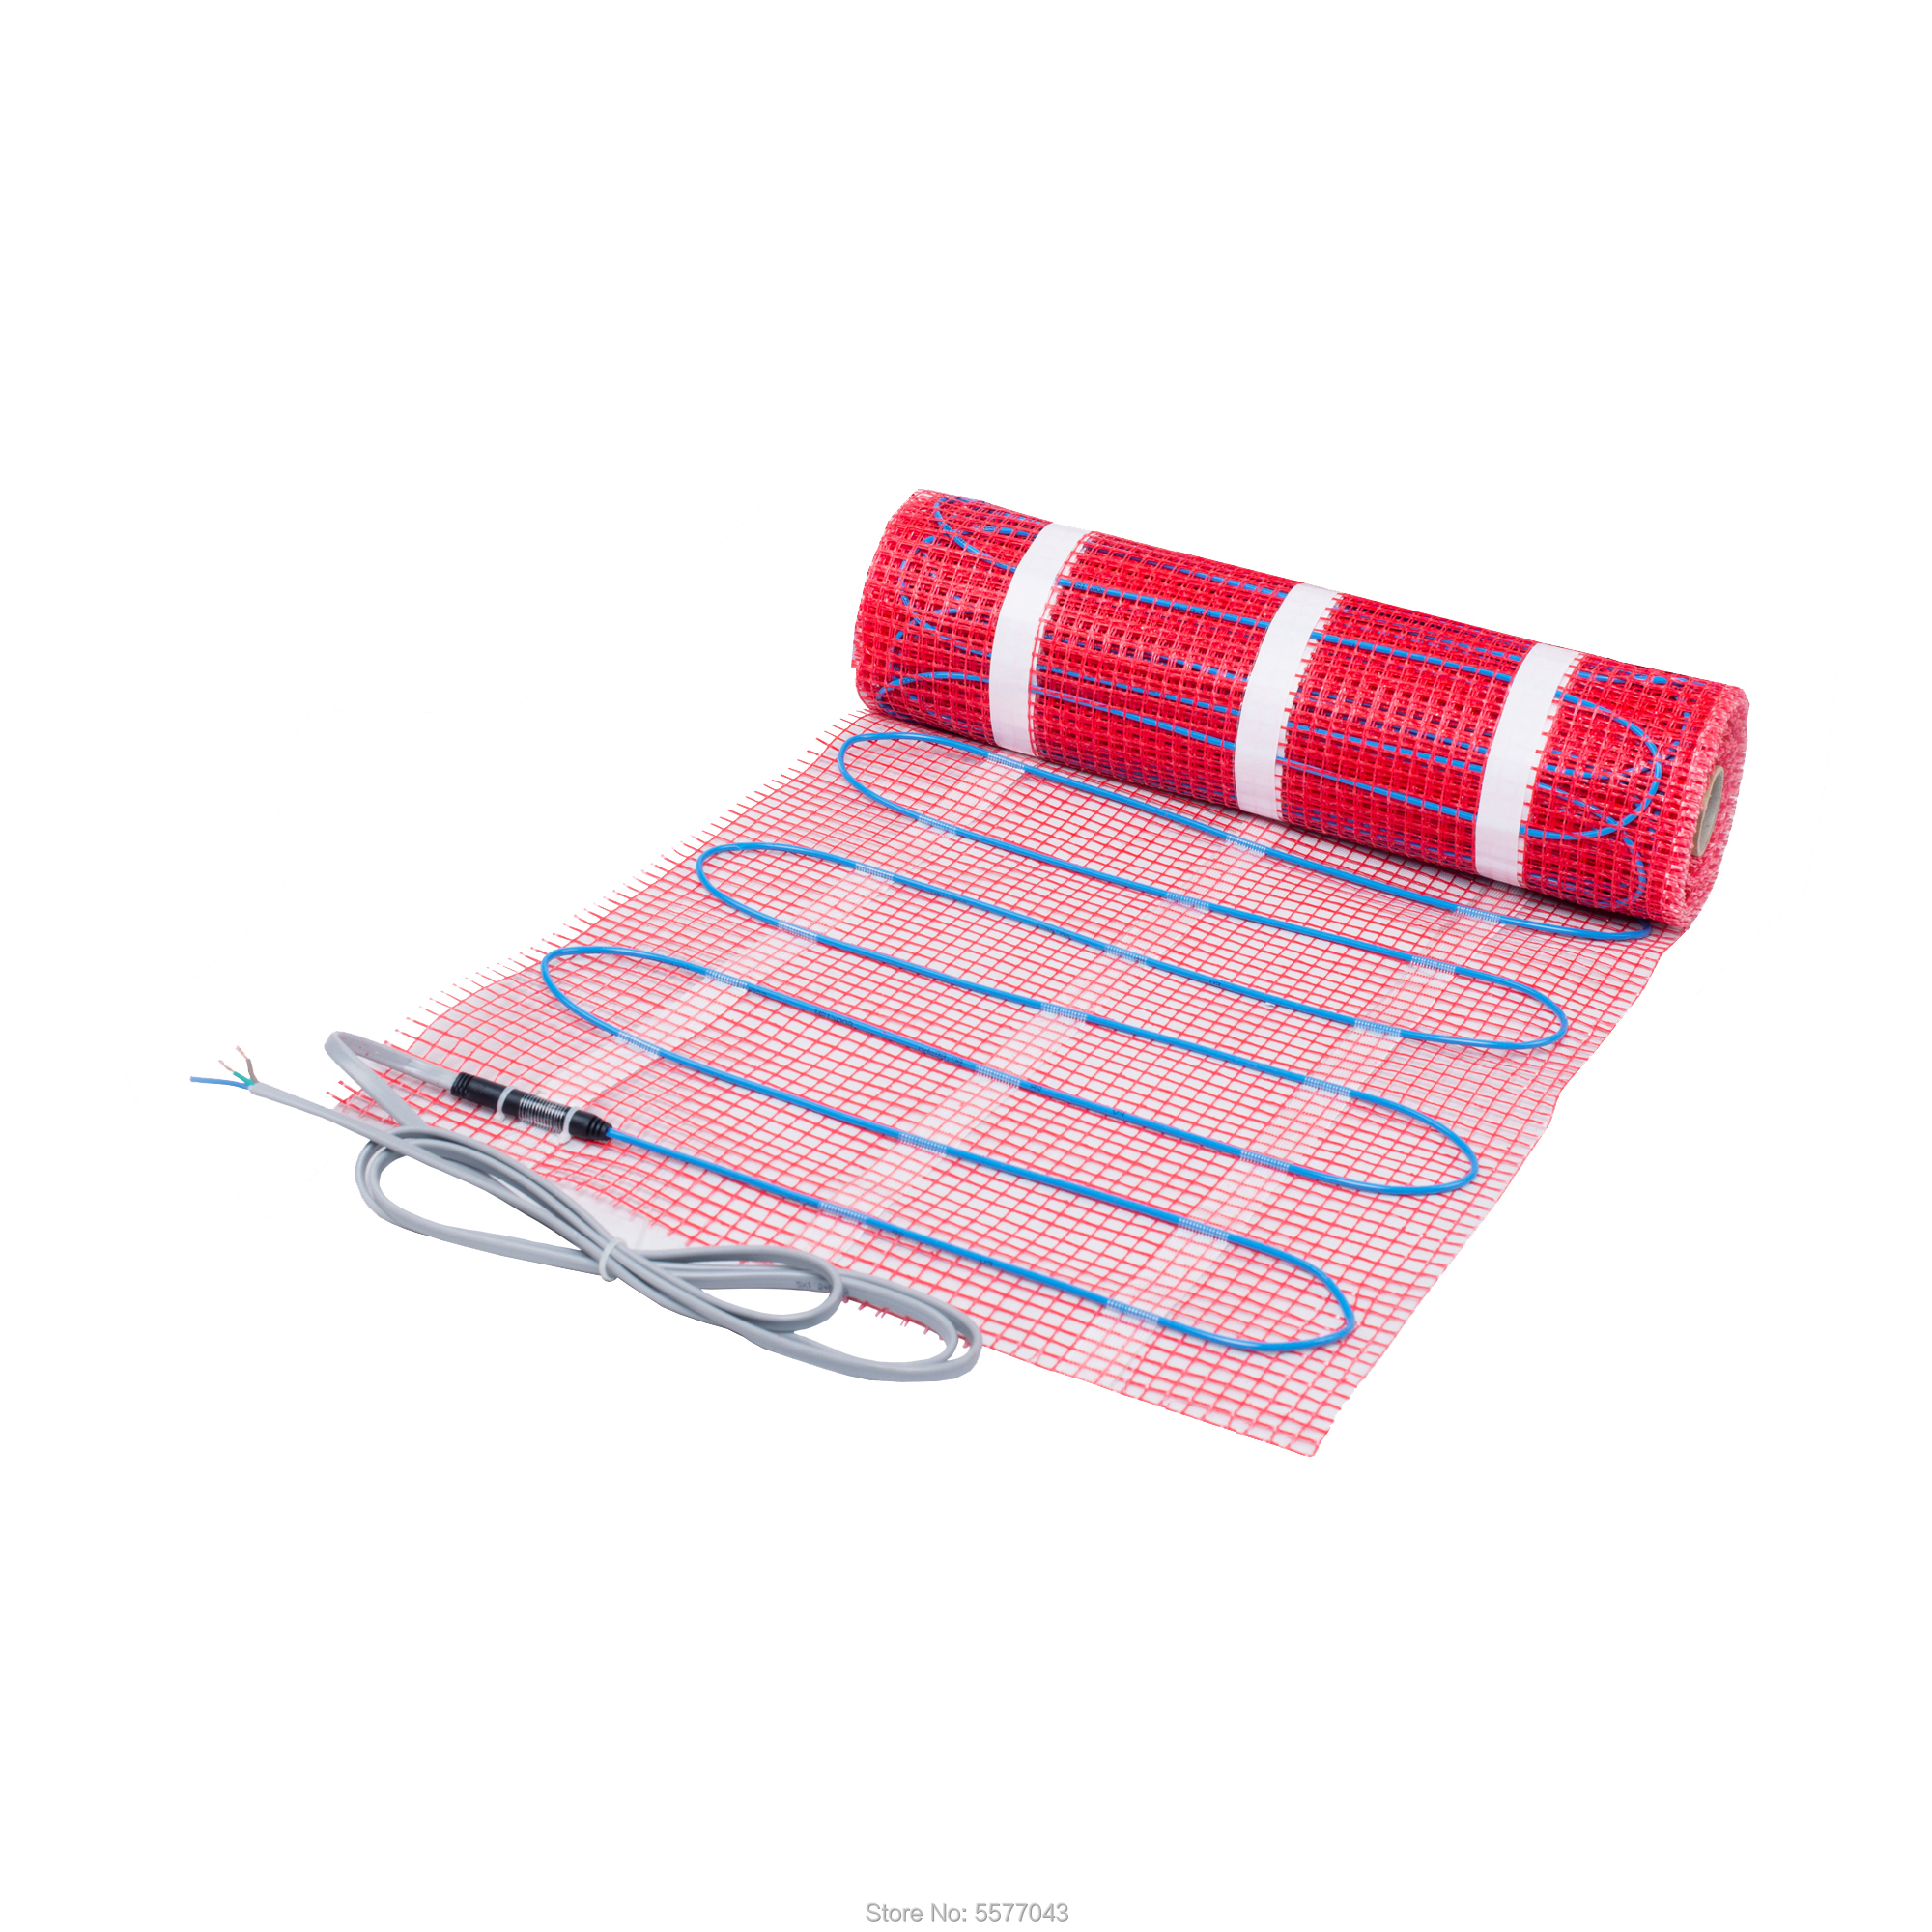 Underfloor Heating Mat For Bathroom Indoor Warming 230V 100W/M2